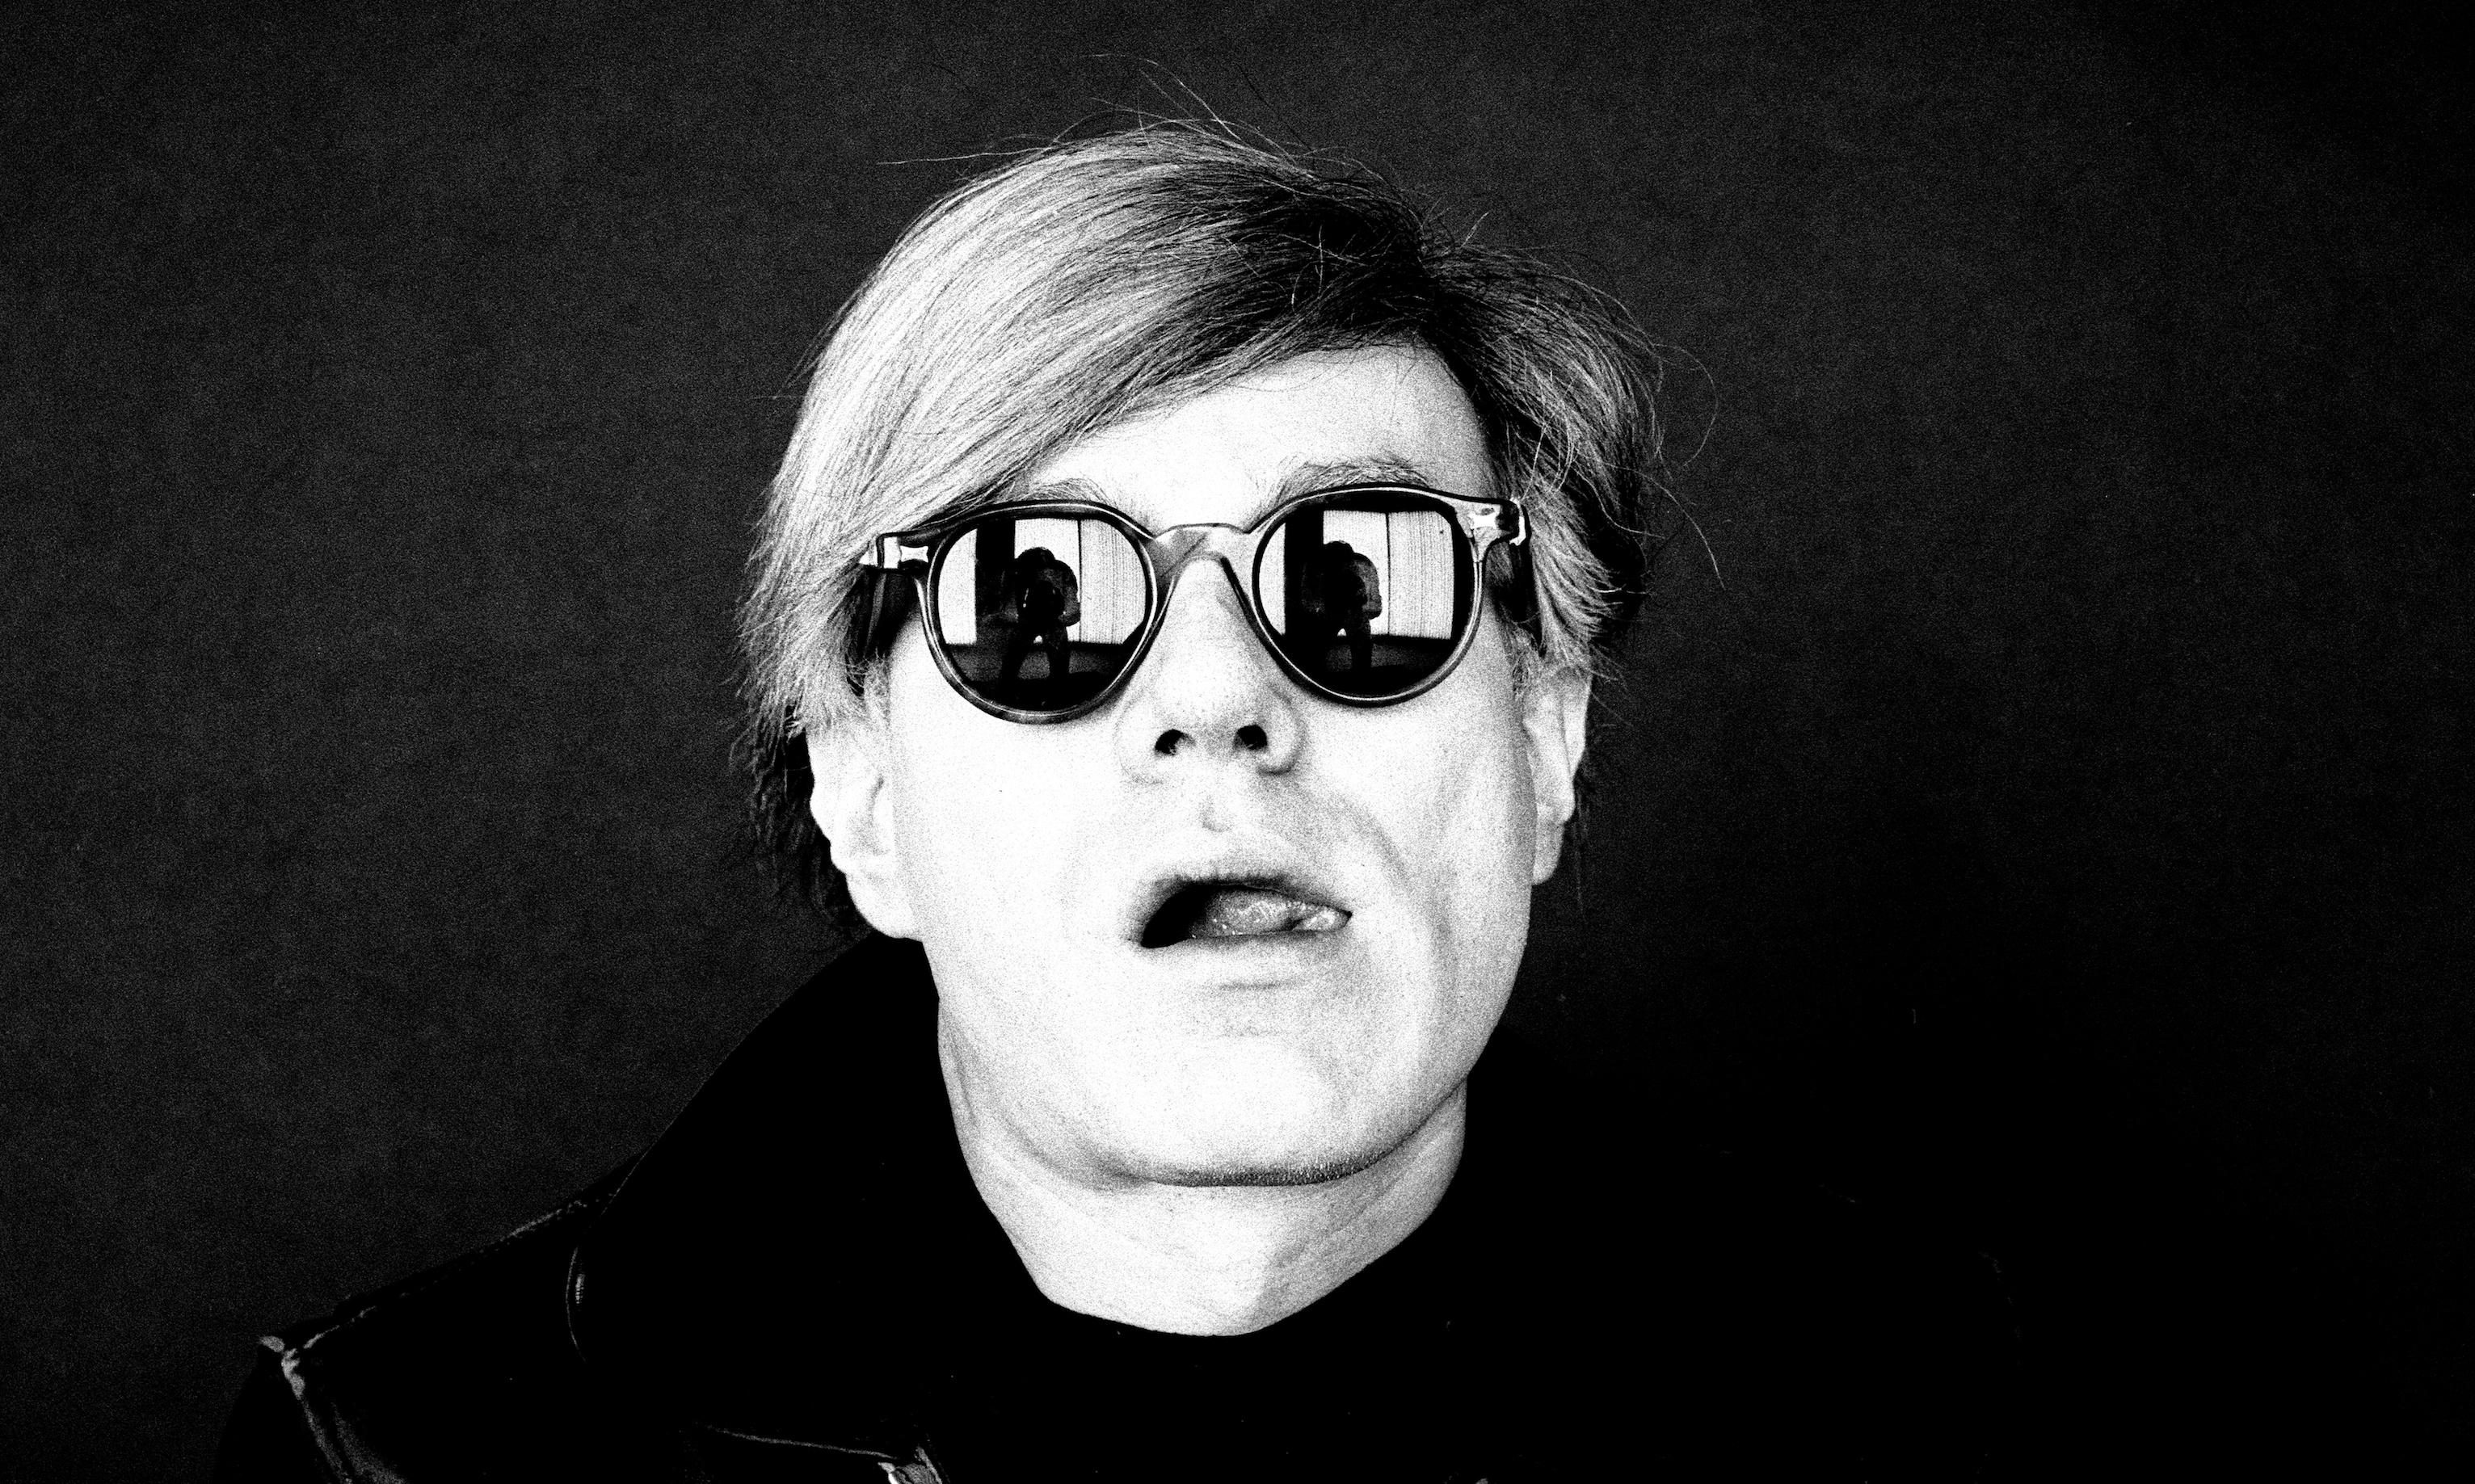 All about Andy: extracts from Warhol – A Life As Art